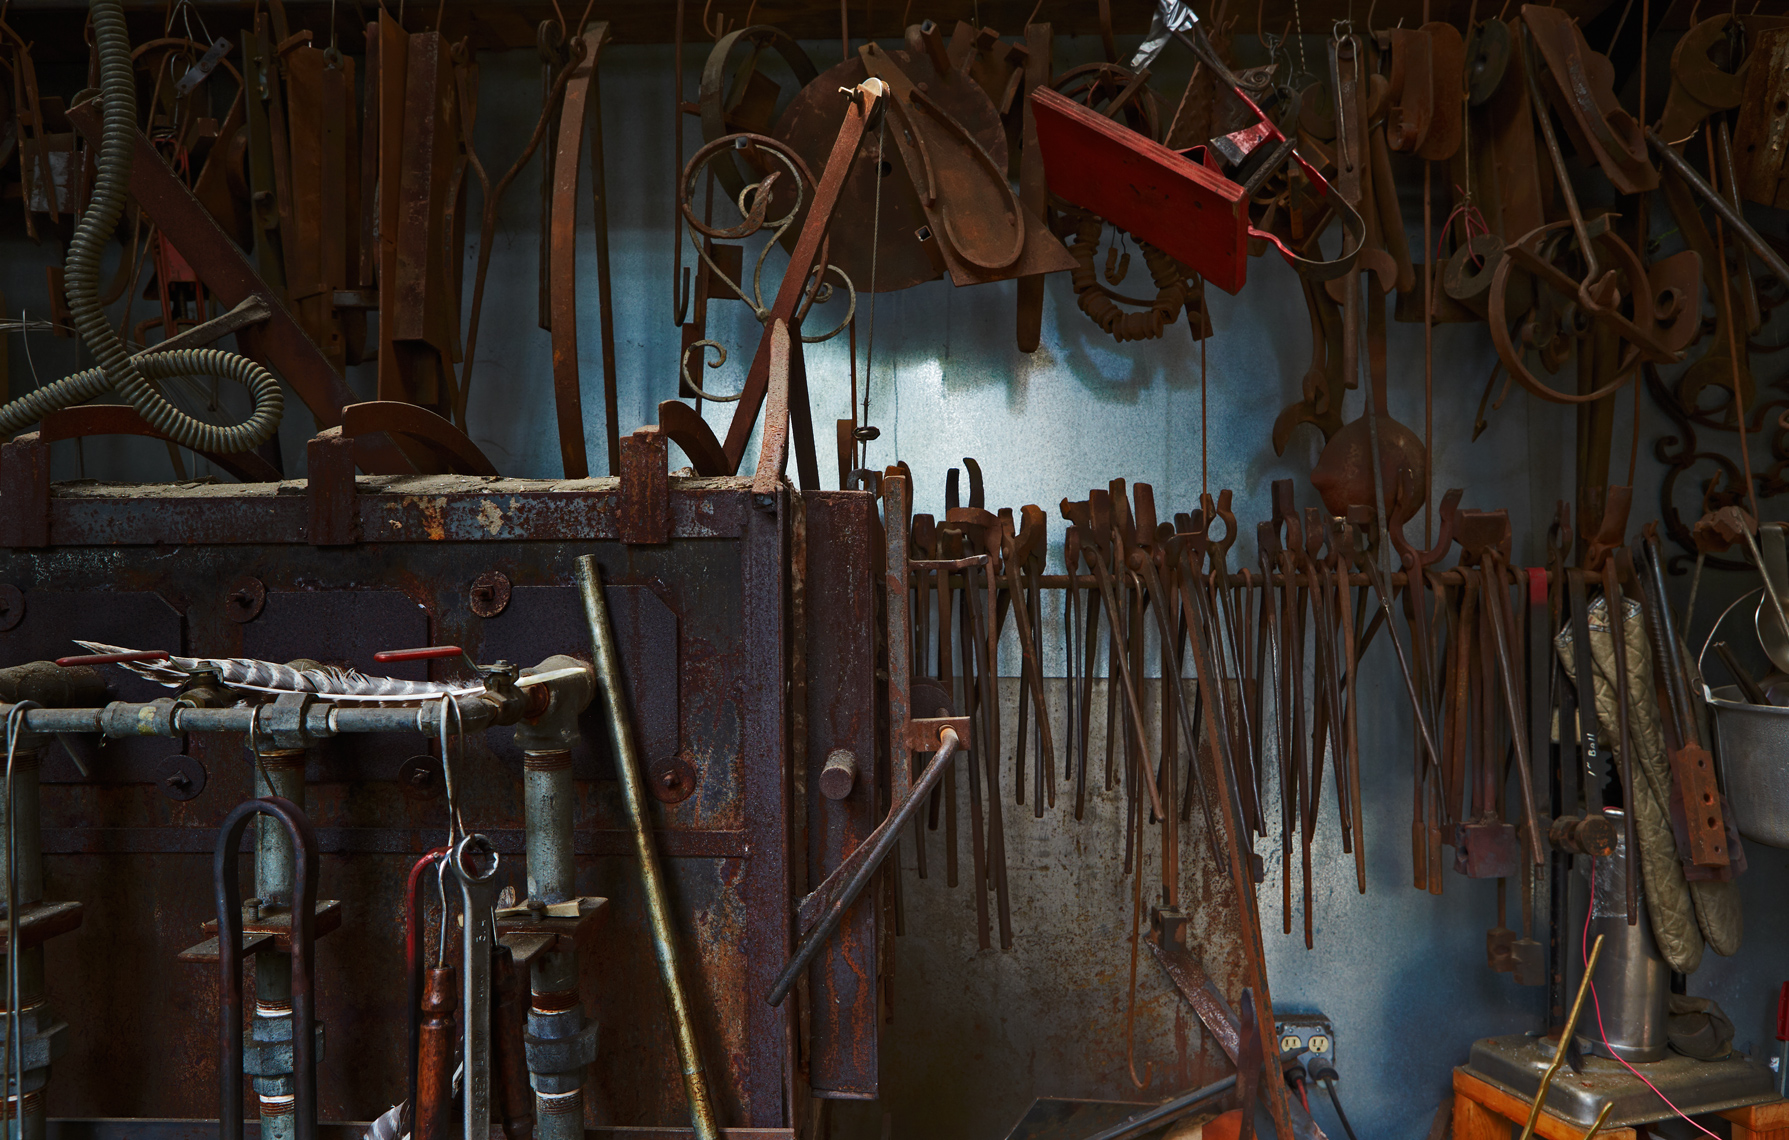 Angelo: Blacksmith Tools